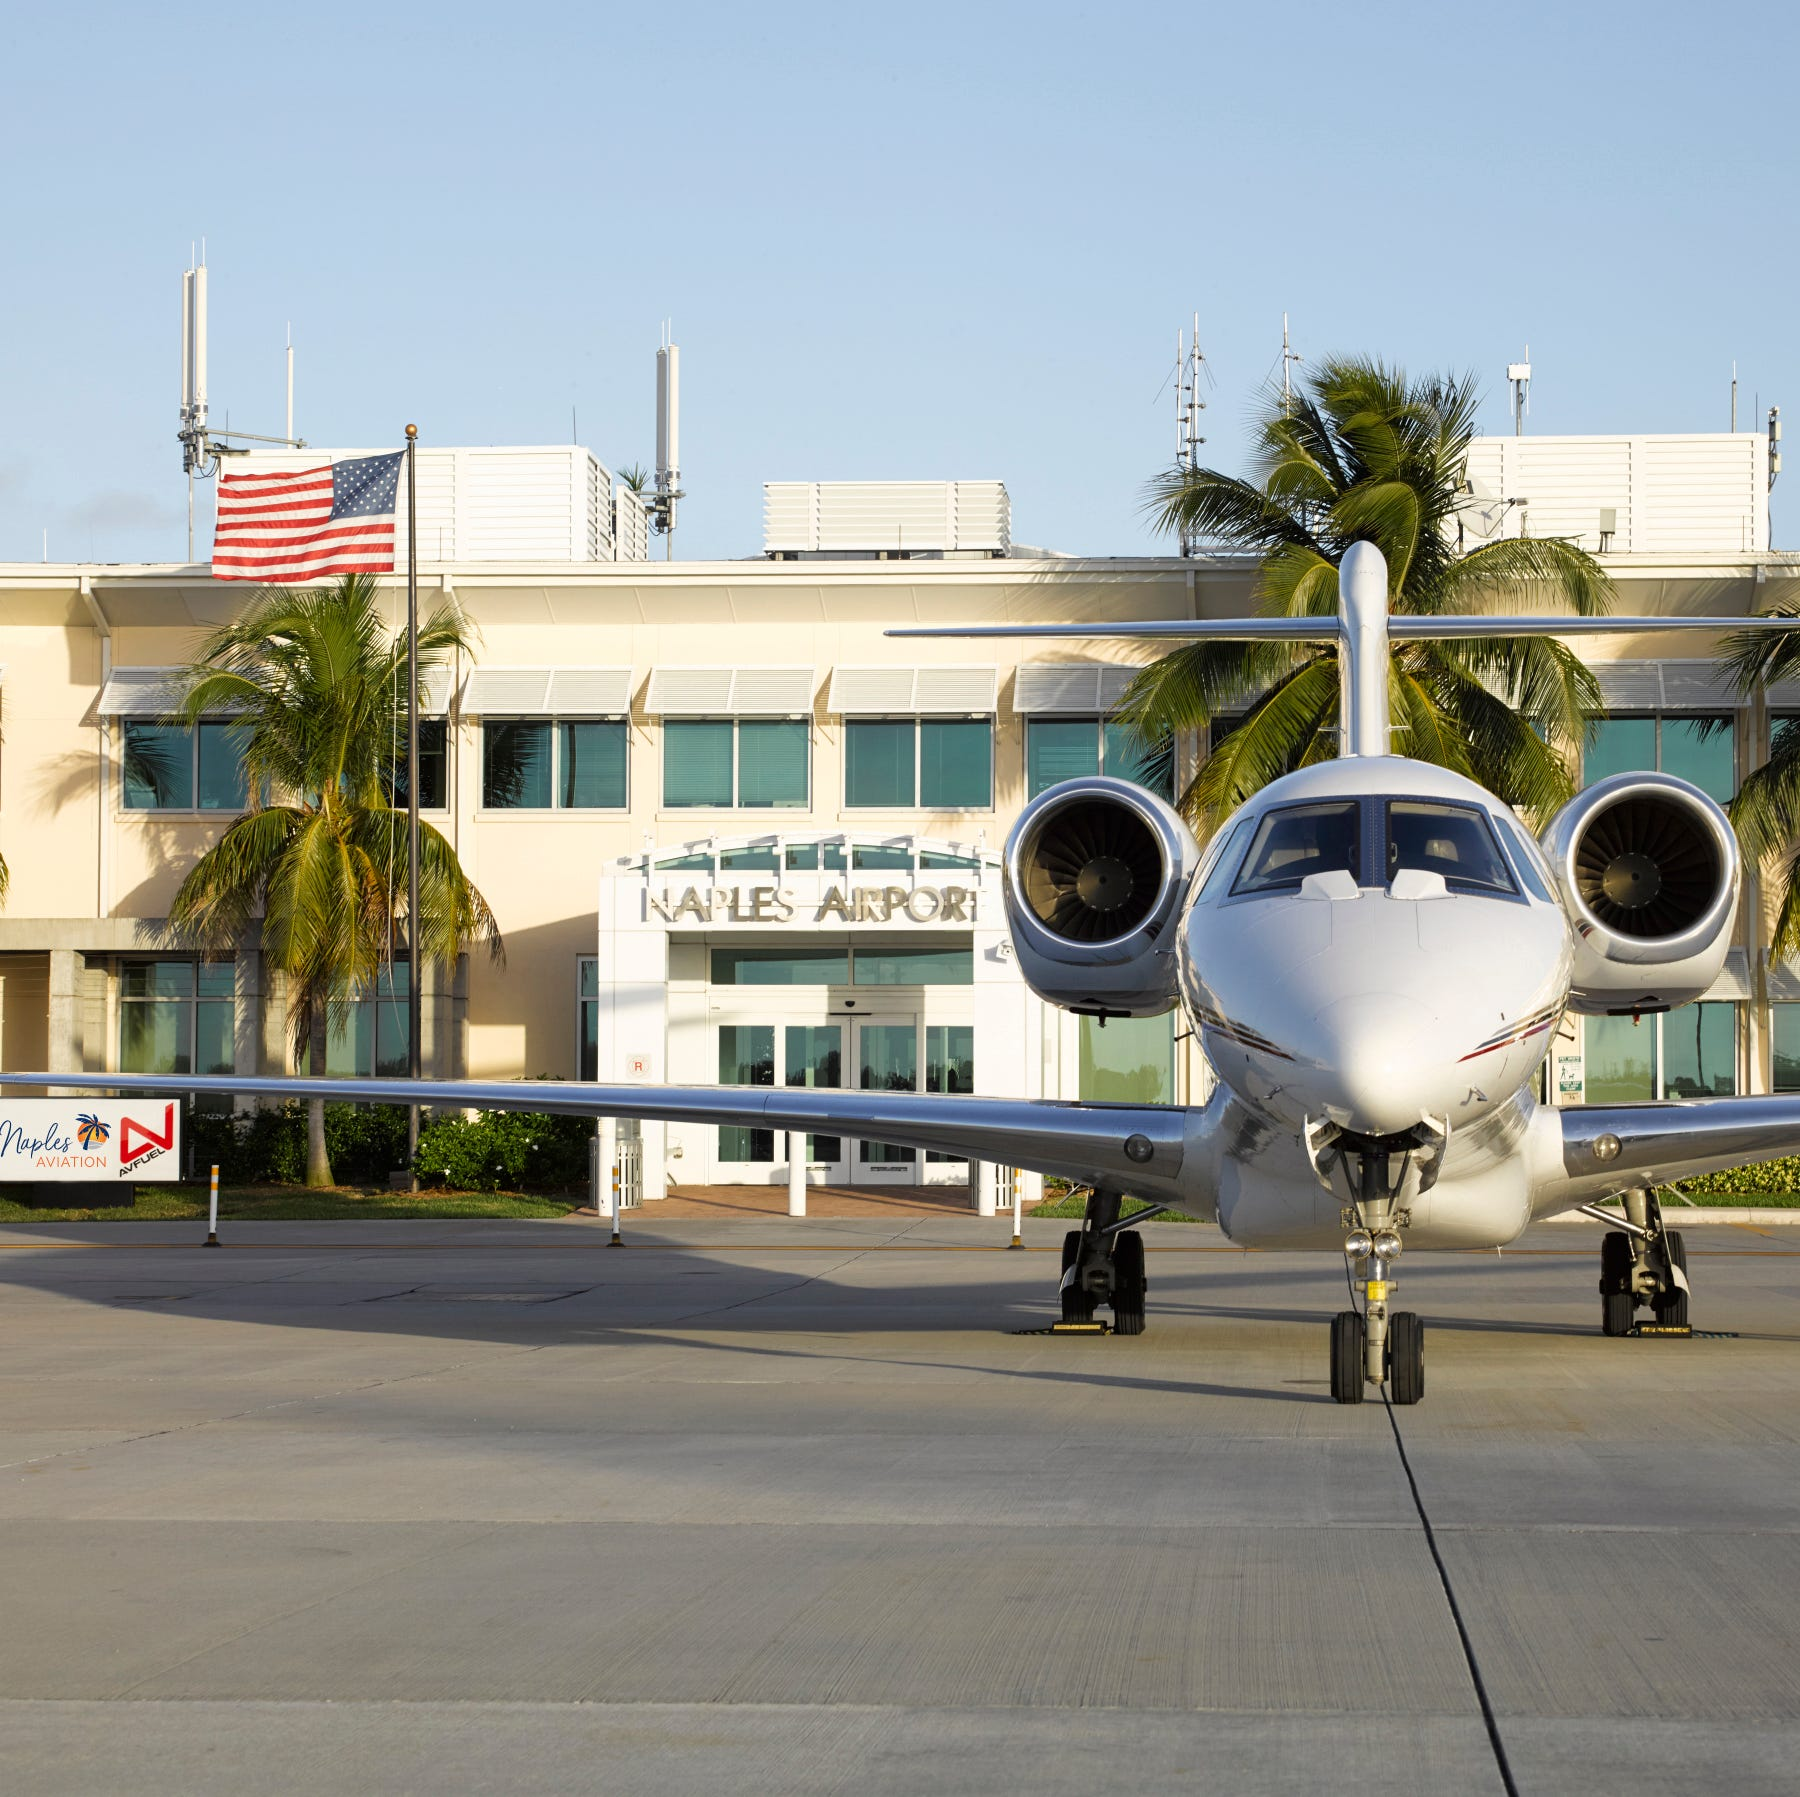 Naples Municipal Airport shortens its name, updates logo